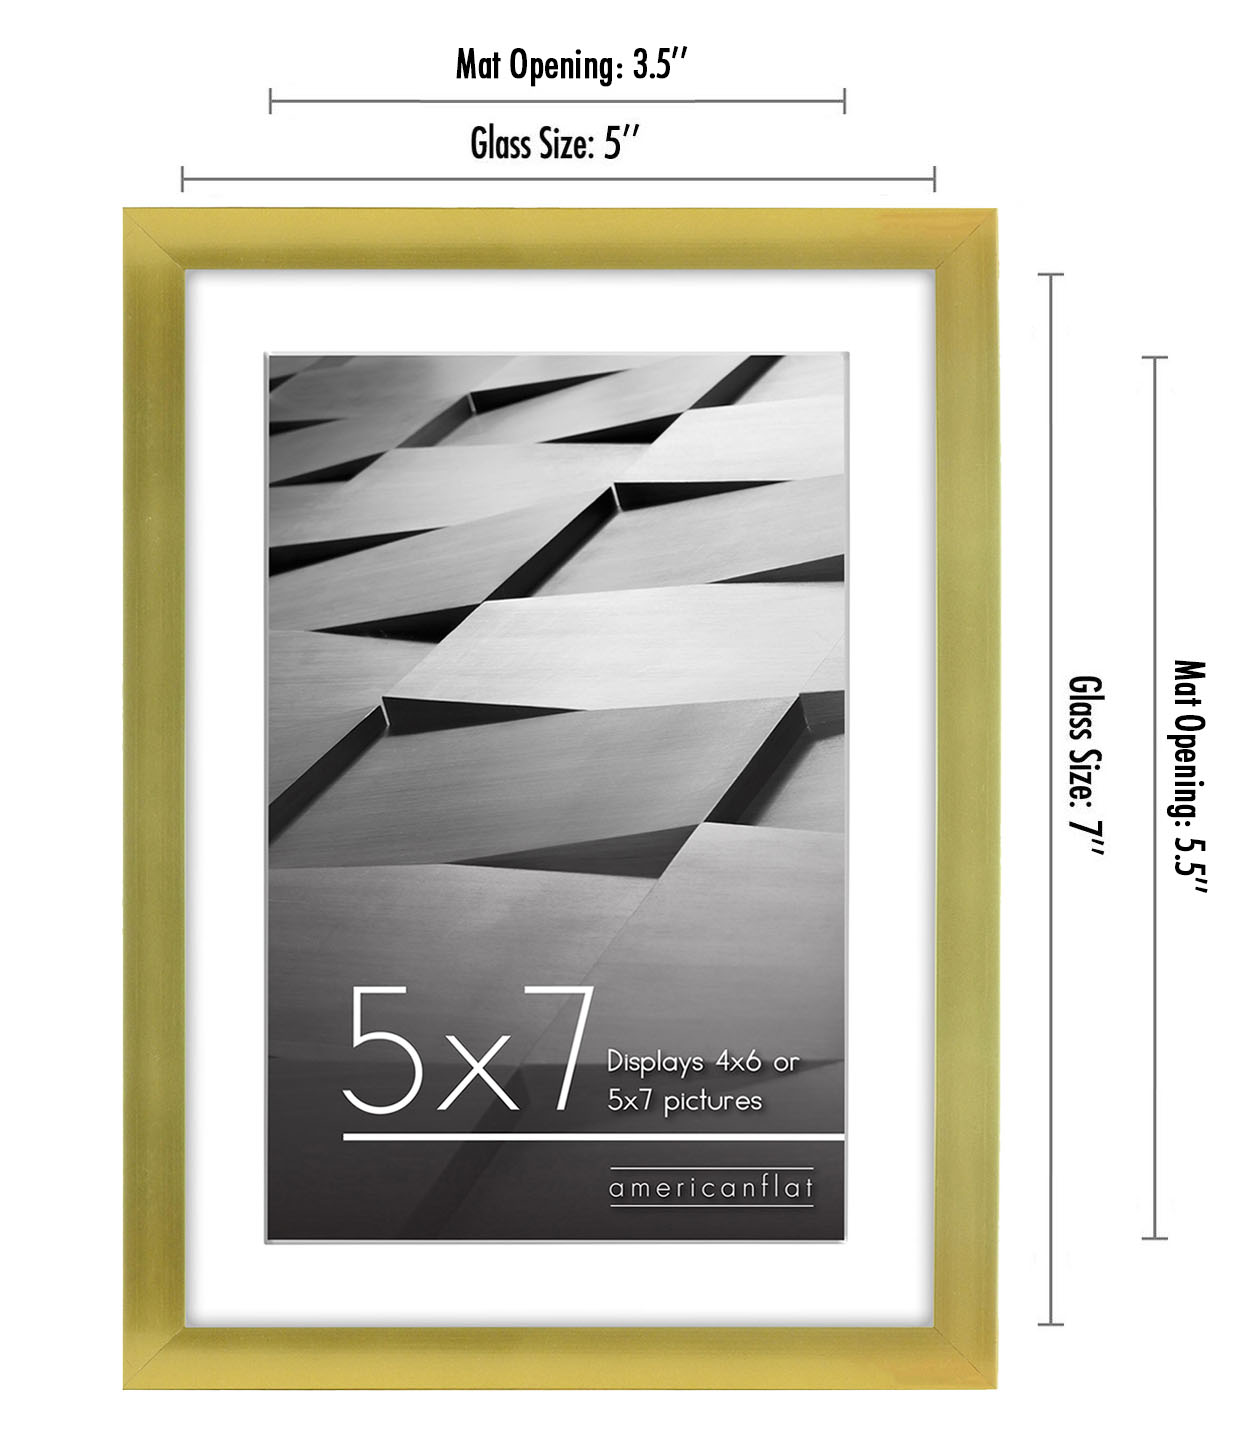 miniature 27 - Americanflat Thin Picture Frame 5x7 8x10 11x14 8.5x11 Wall Tabletop Pick Color